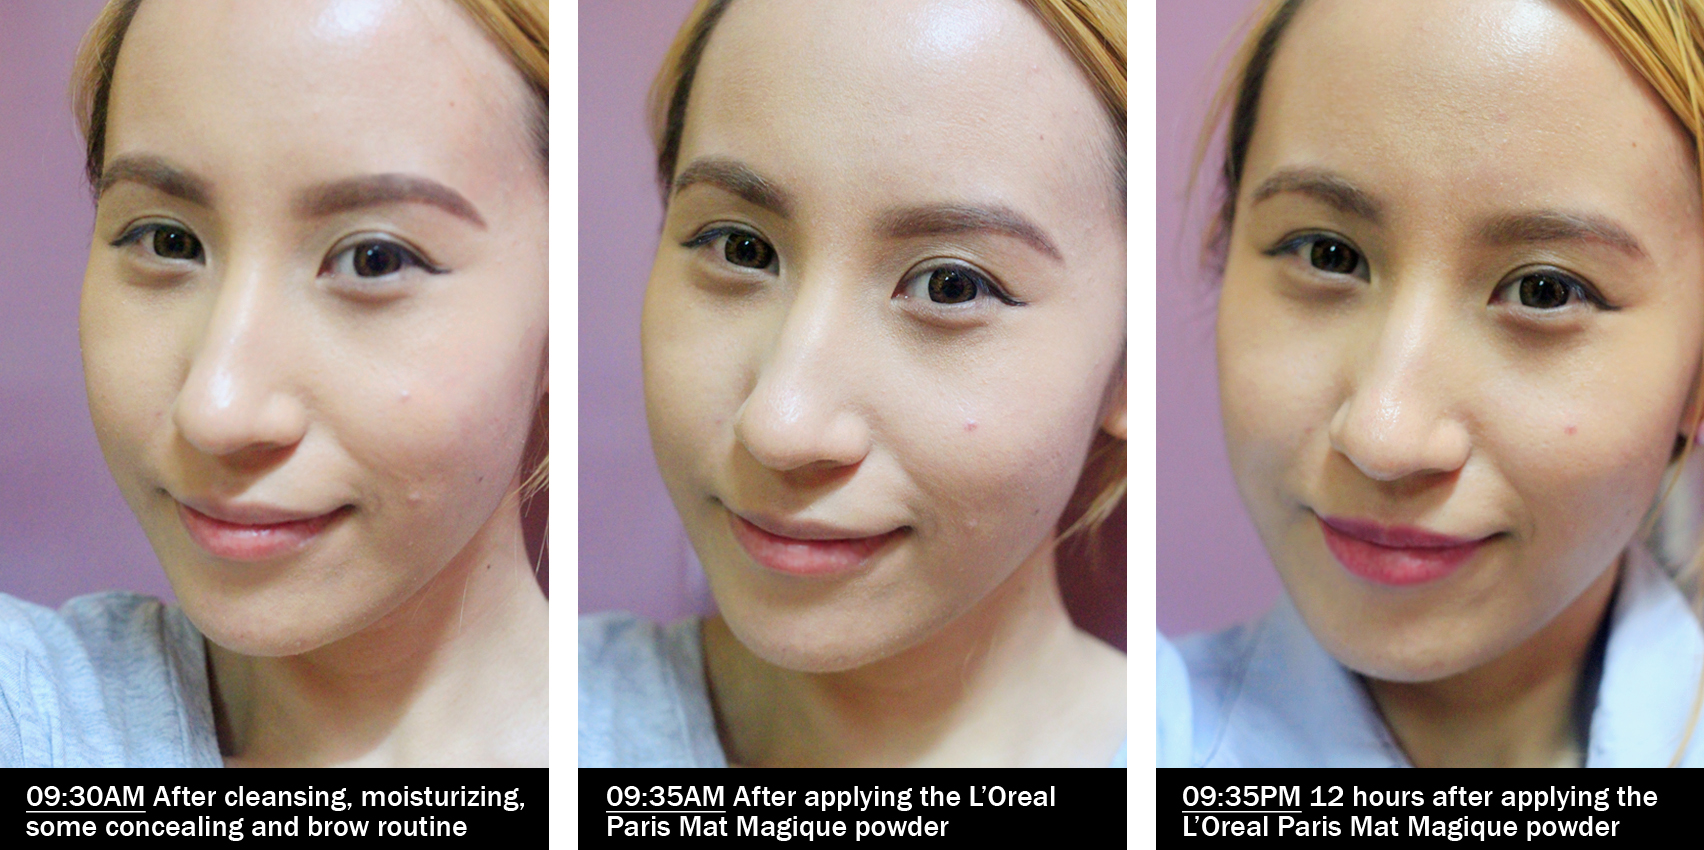 L'Oreal Mat Magique before and after application